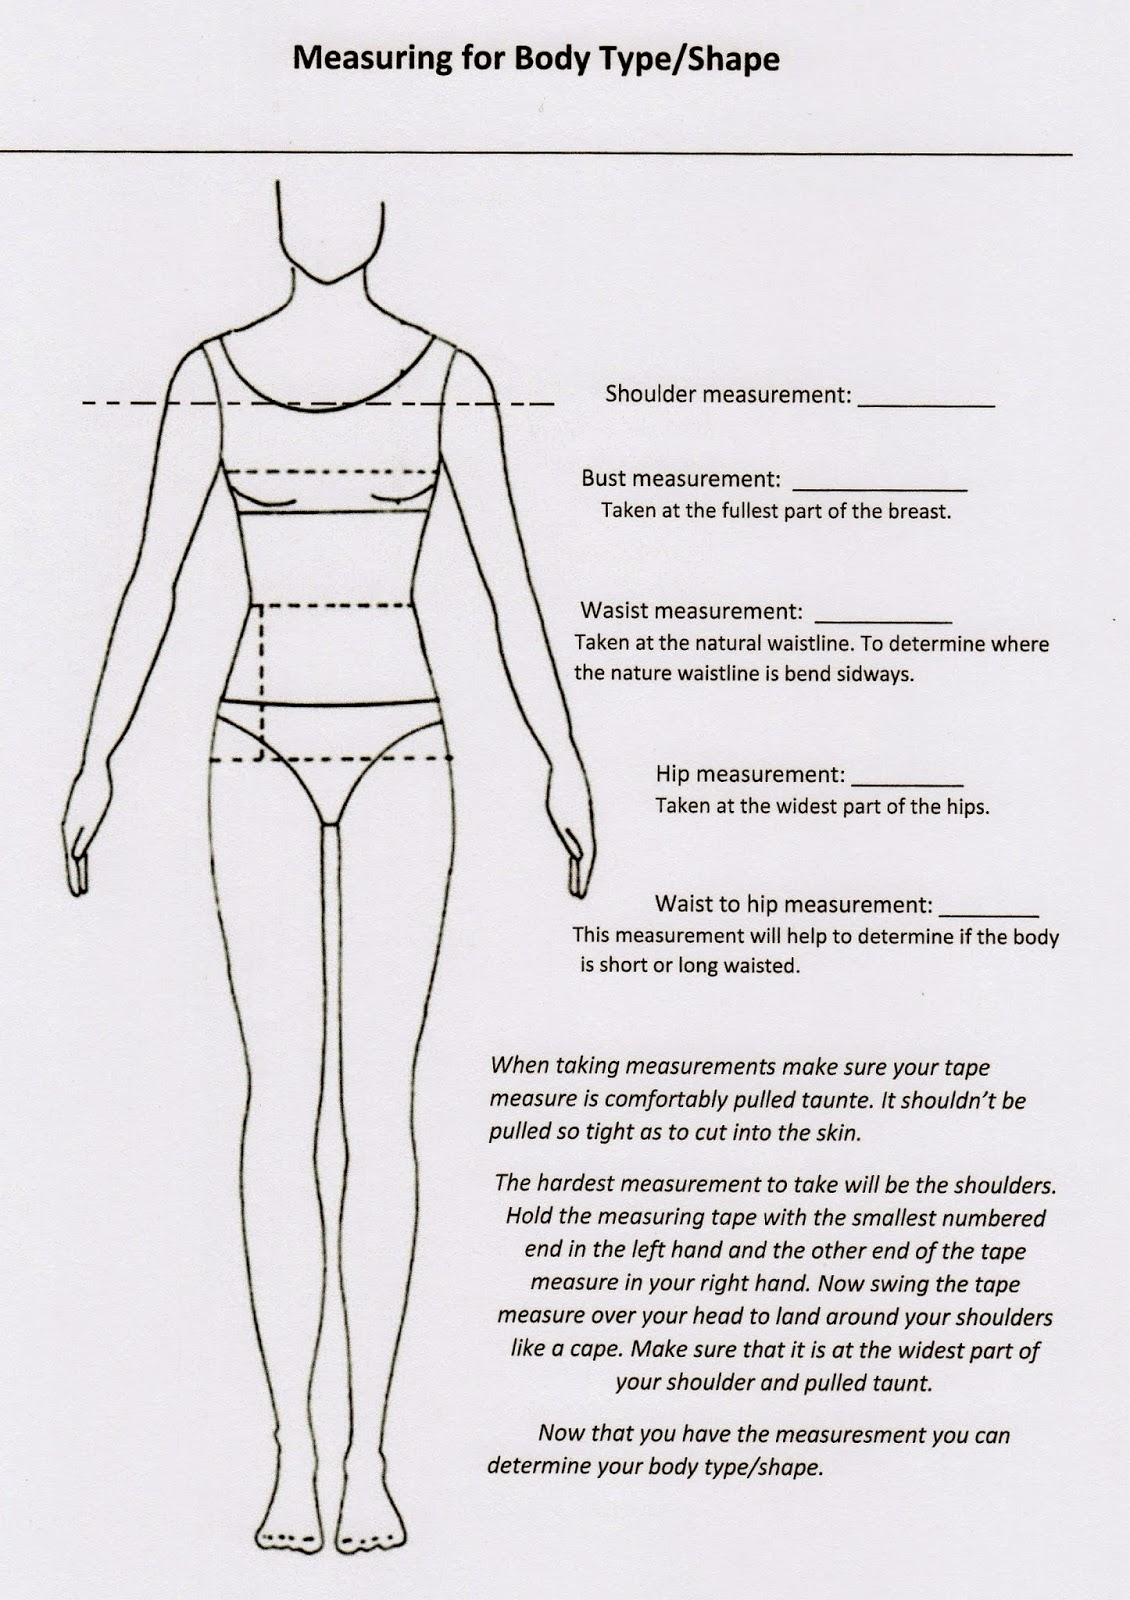 Just Being Nan: What's Your Body Shape/Type?